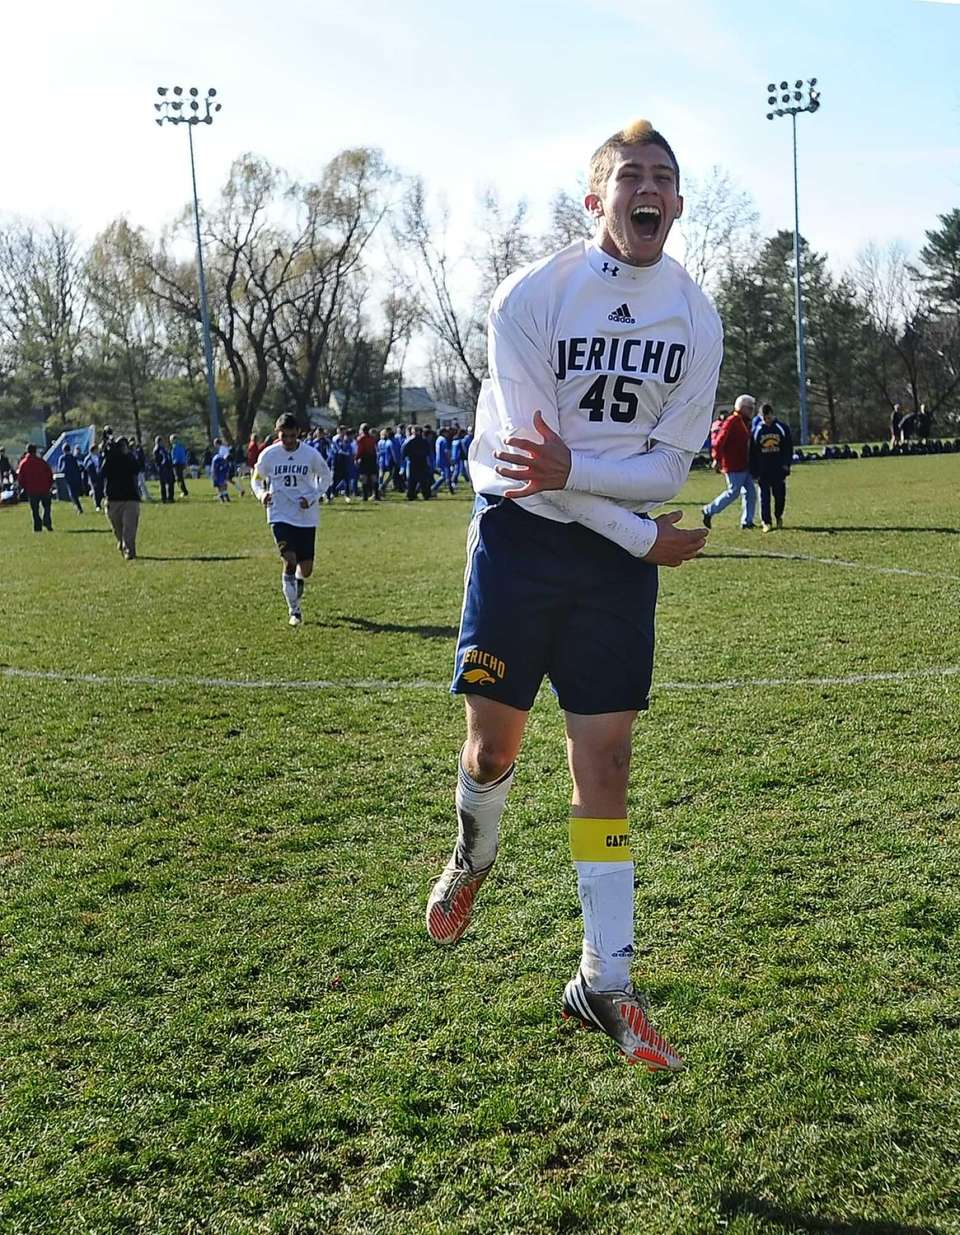 Jericho's Zachary Cohen celebrates following his team's victory.